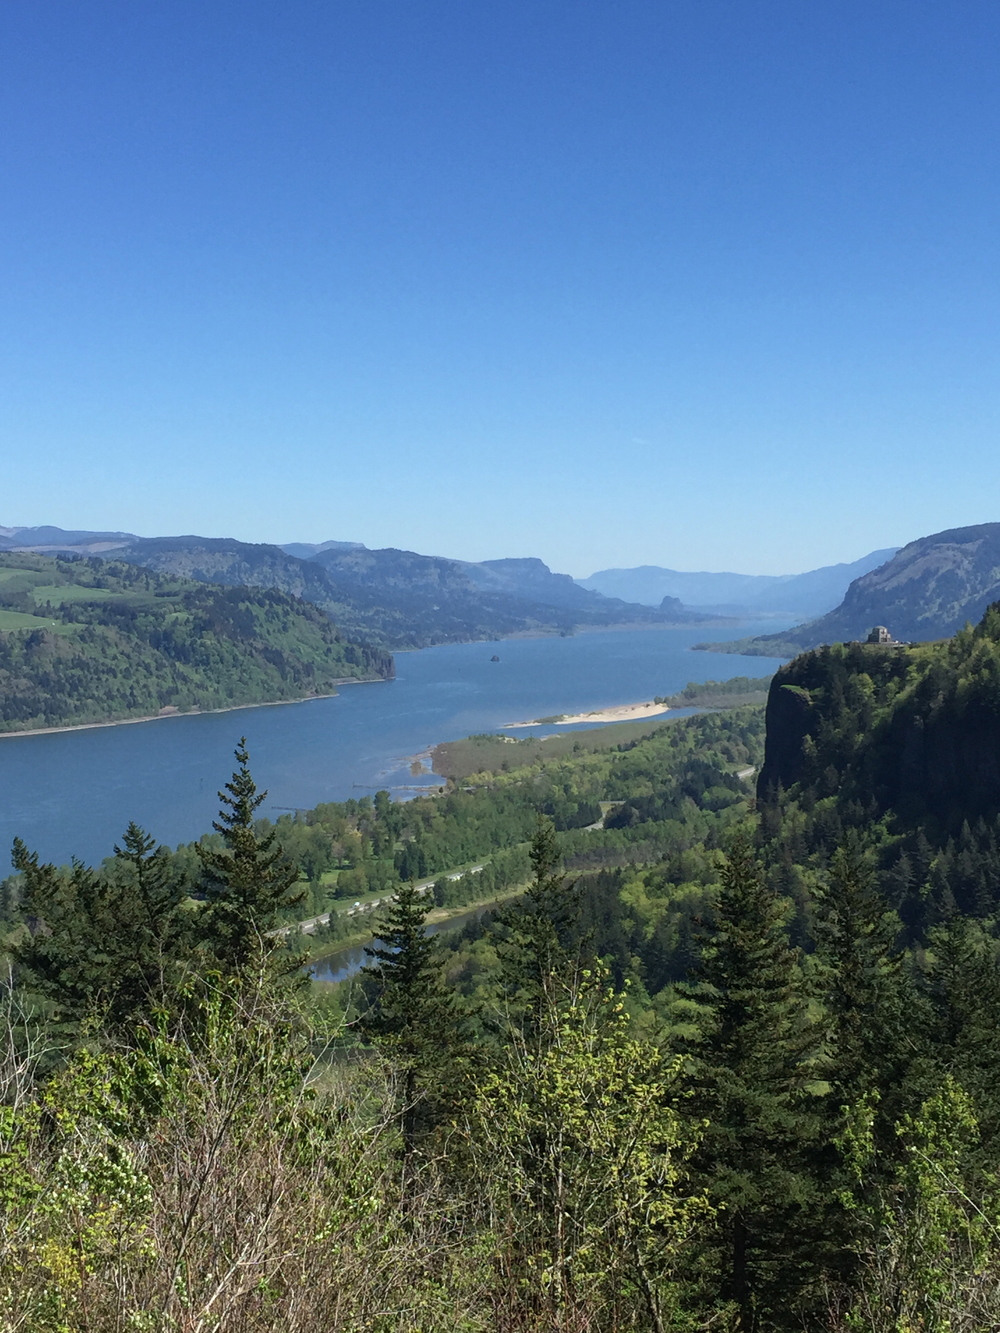 The start of our adventures in the Columbia River Gorge and surrounding areas.